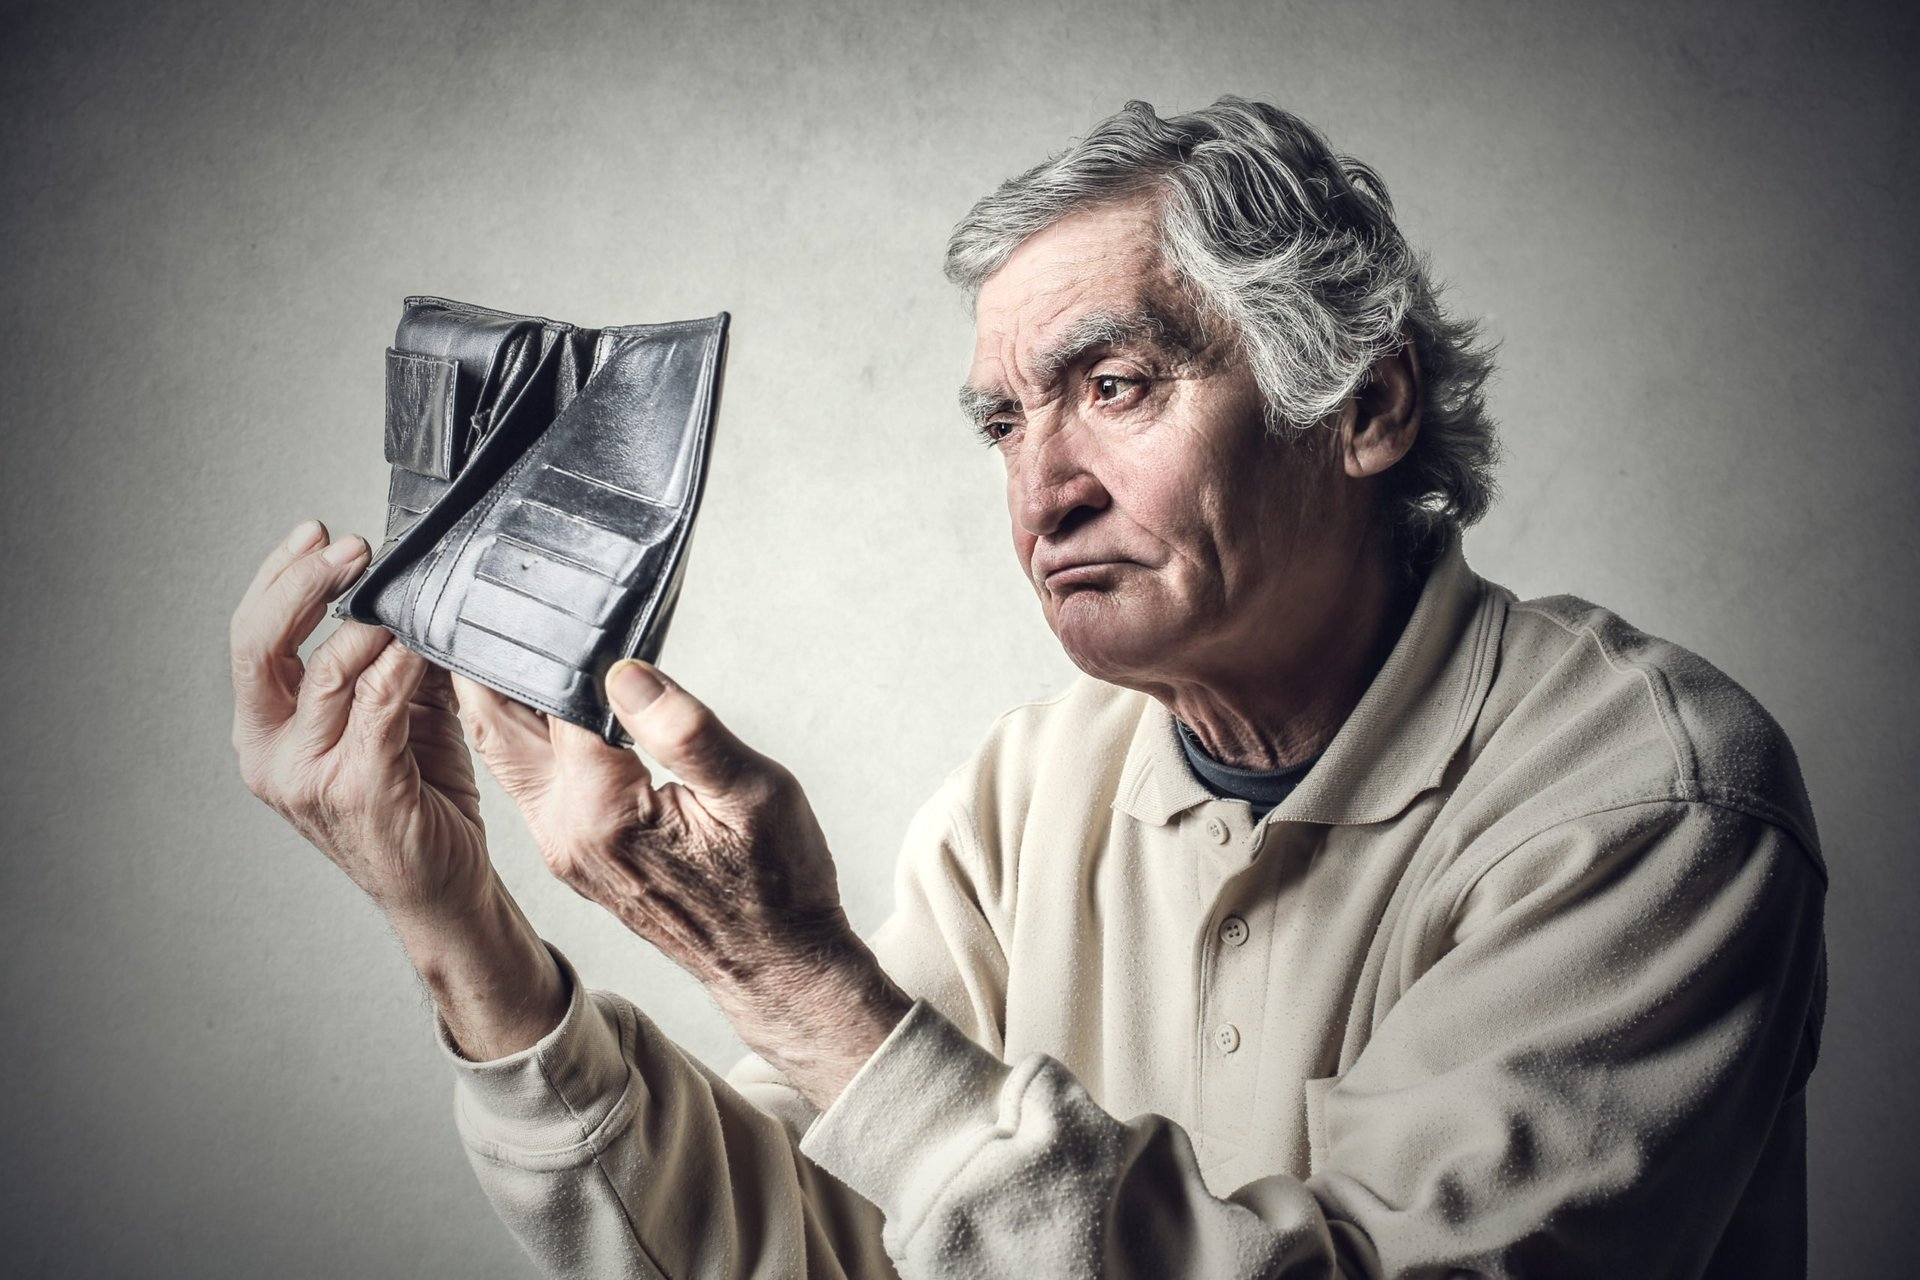 Broke senior holding an empty wallet